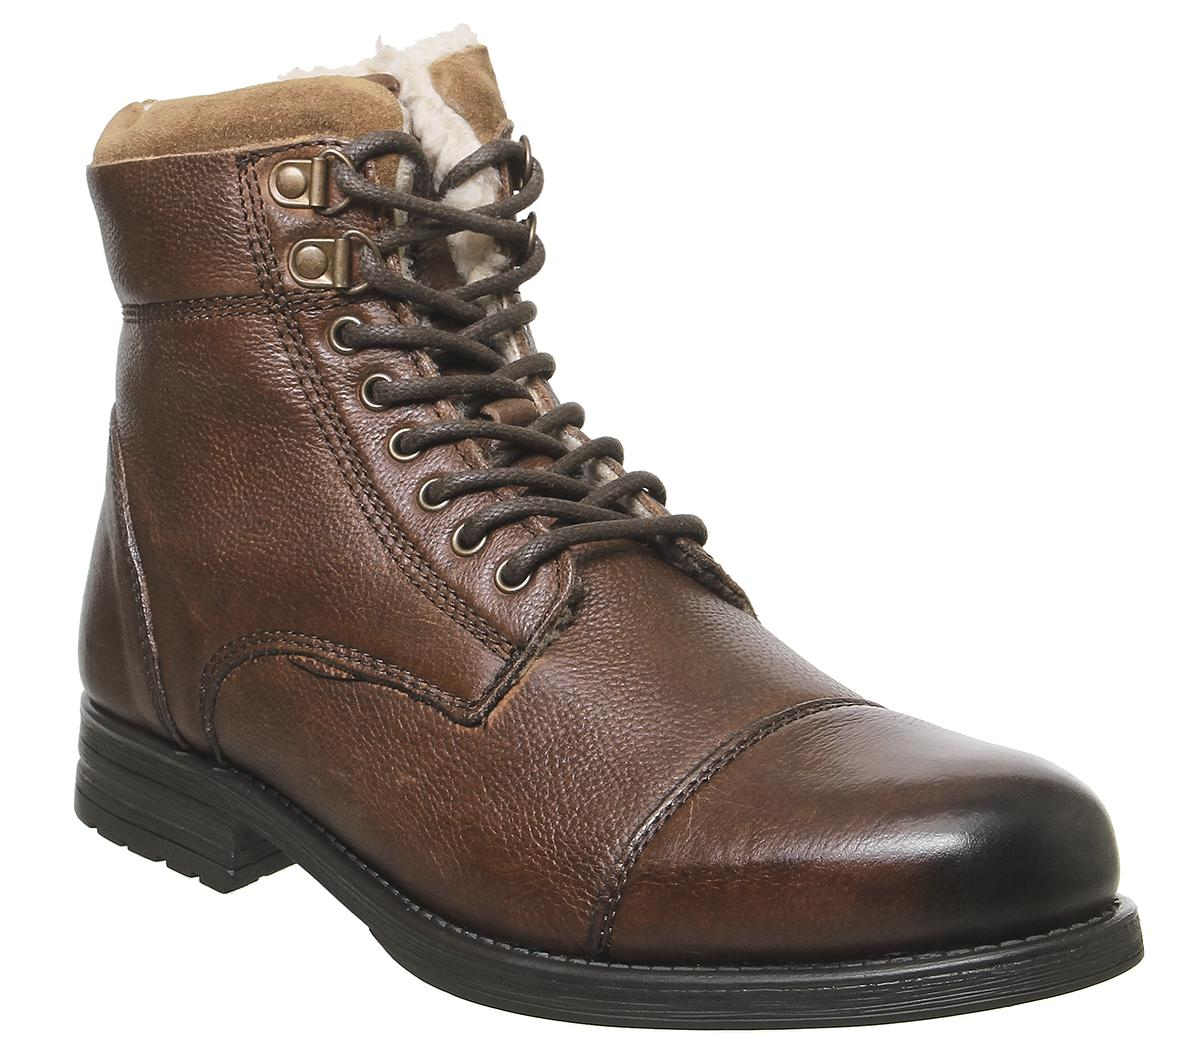 Buckley Lace Boots